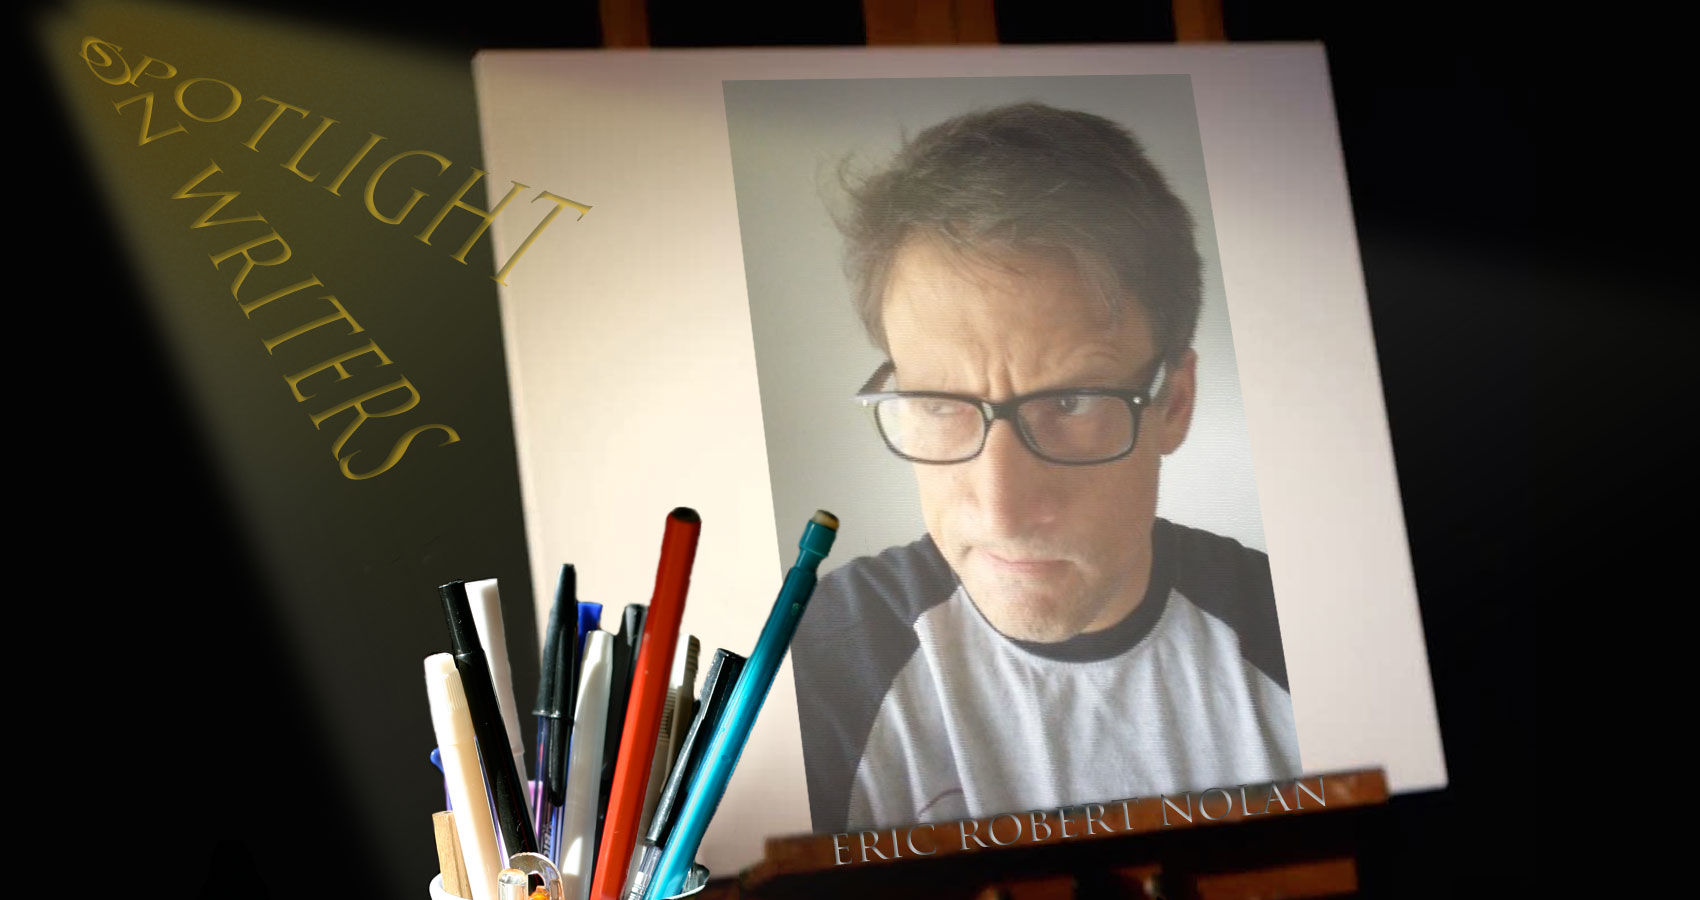 Spotlight On Writers - Eric Robert Nolan, interview at Spillwords.com